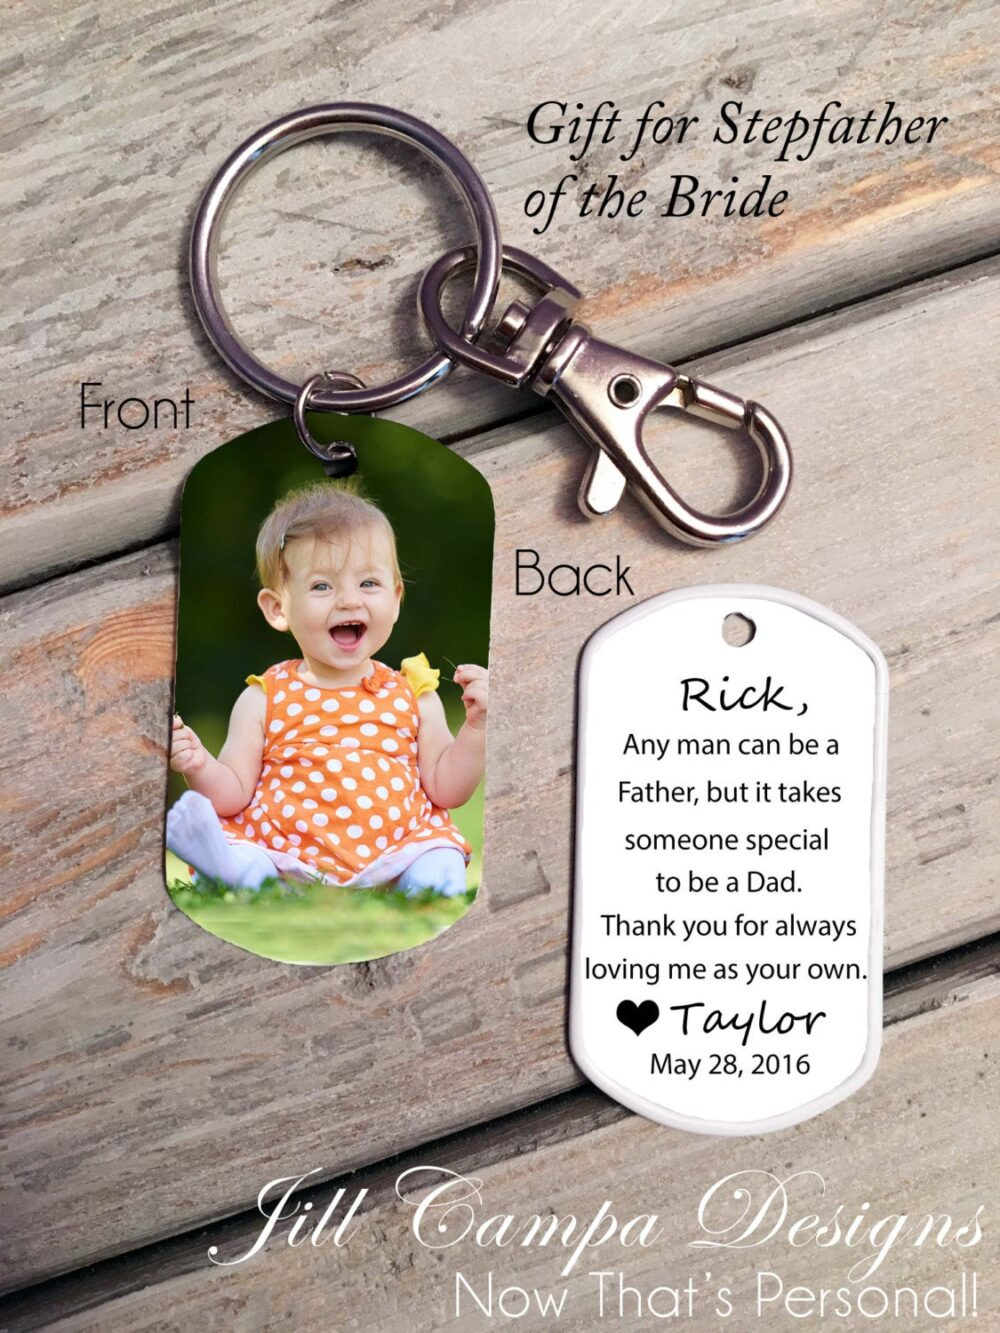 Stepfather Of The Bride - Stepdad Bride Custom Photo, Gift For Stepdad, Step Dad Wedding Father Bride, Stepfather